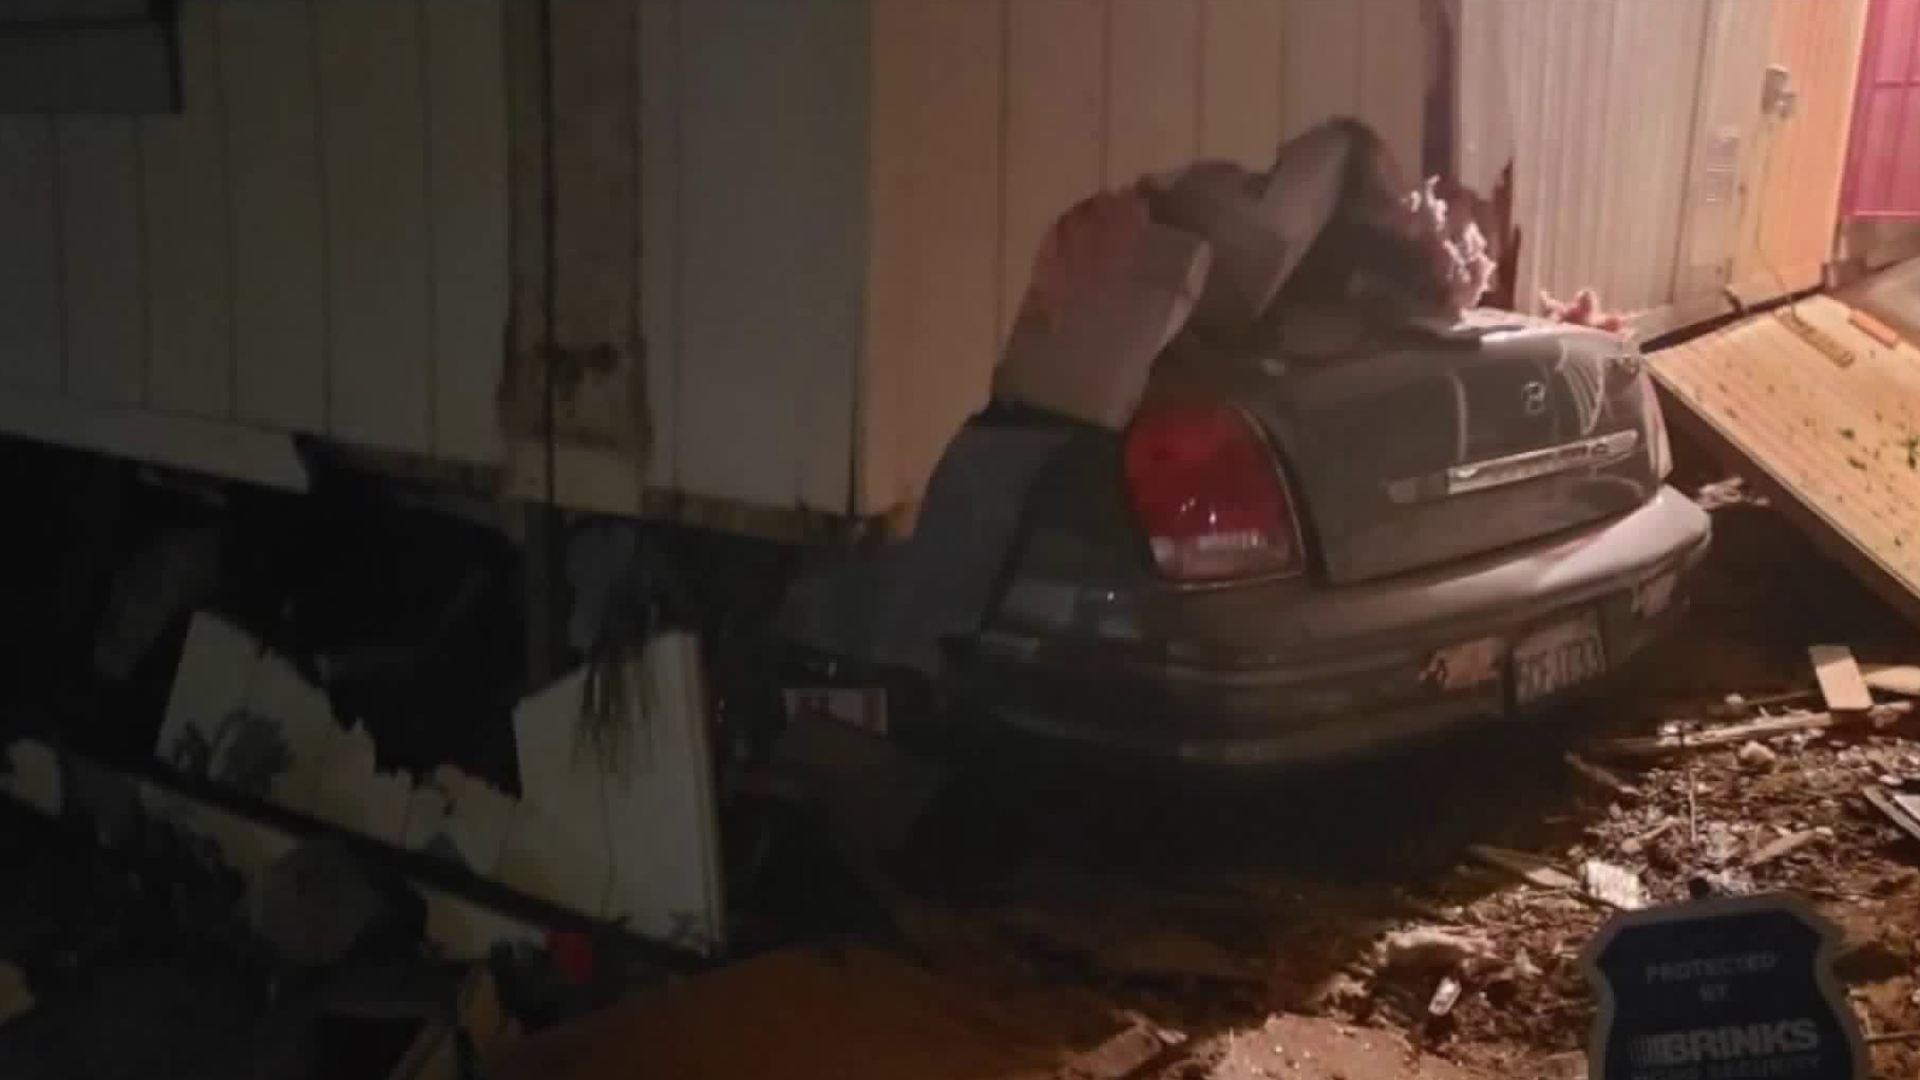 A car remains stuck under a mobile home after the driver slammed into it on Nov. 4, 2019. (Photo courtesy of Zack Holst)